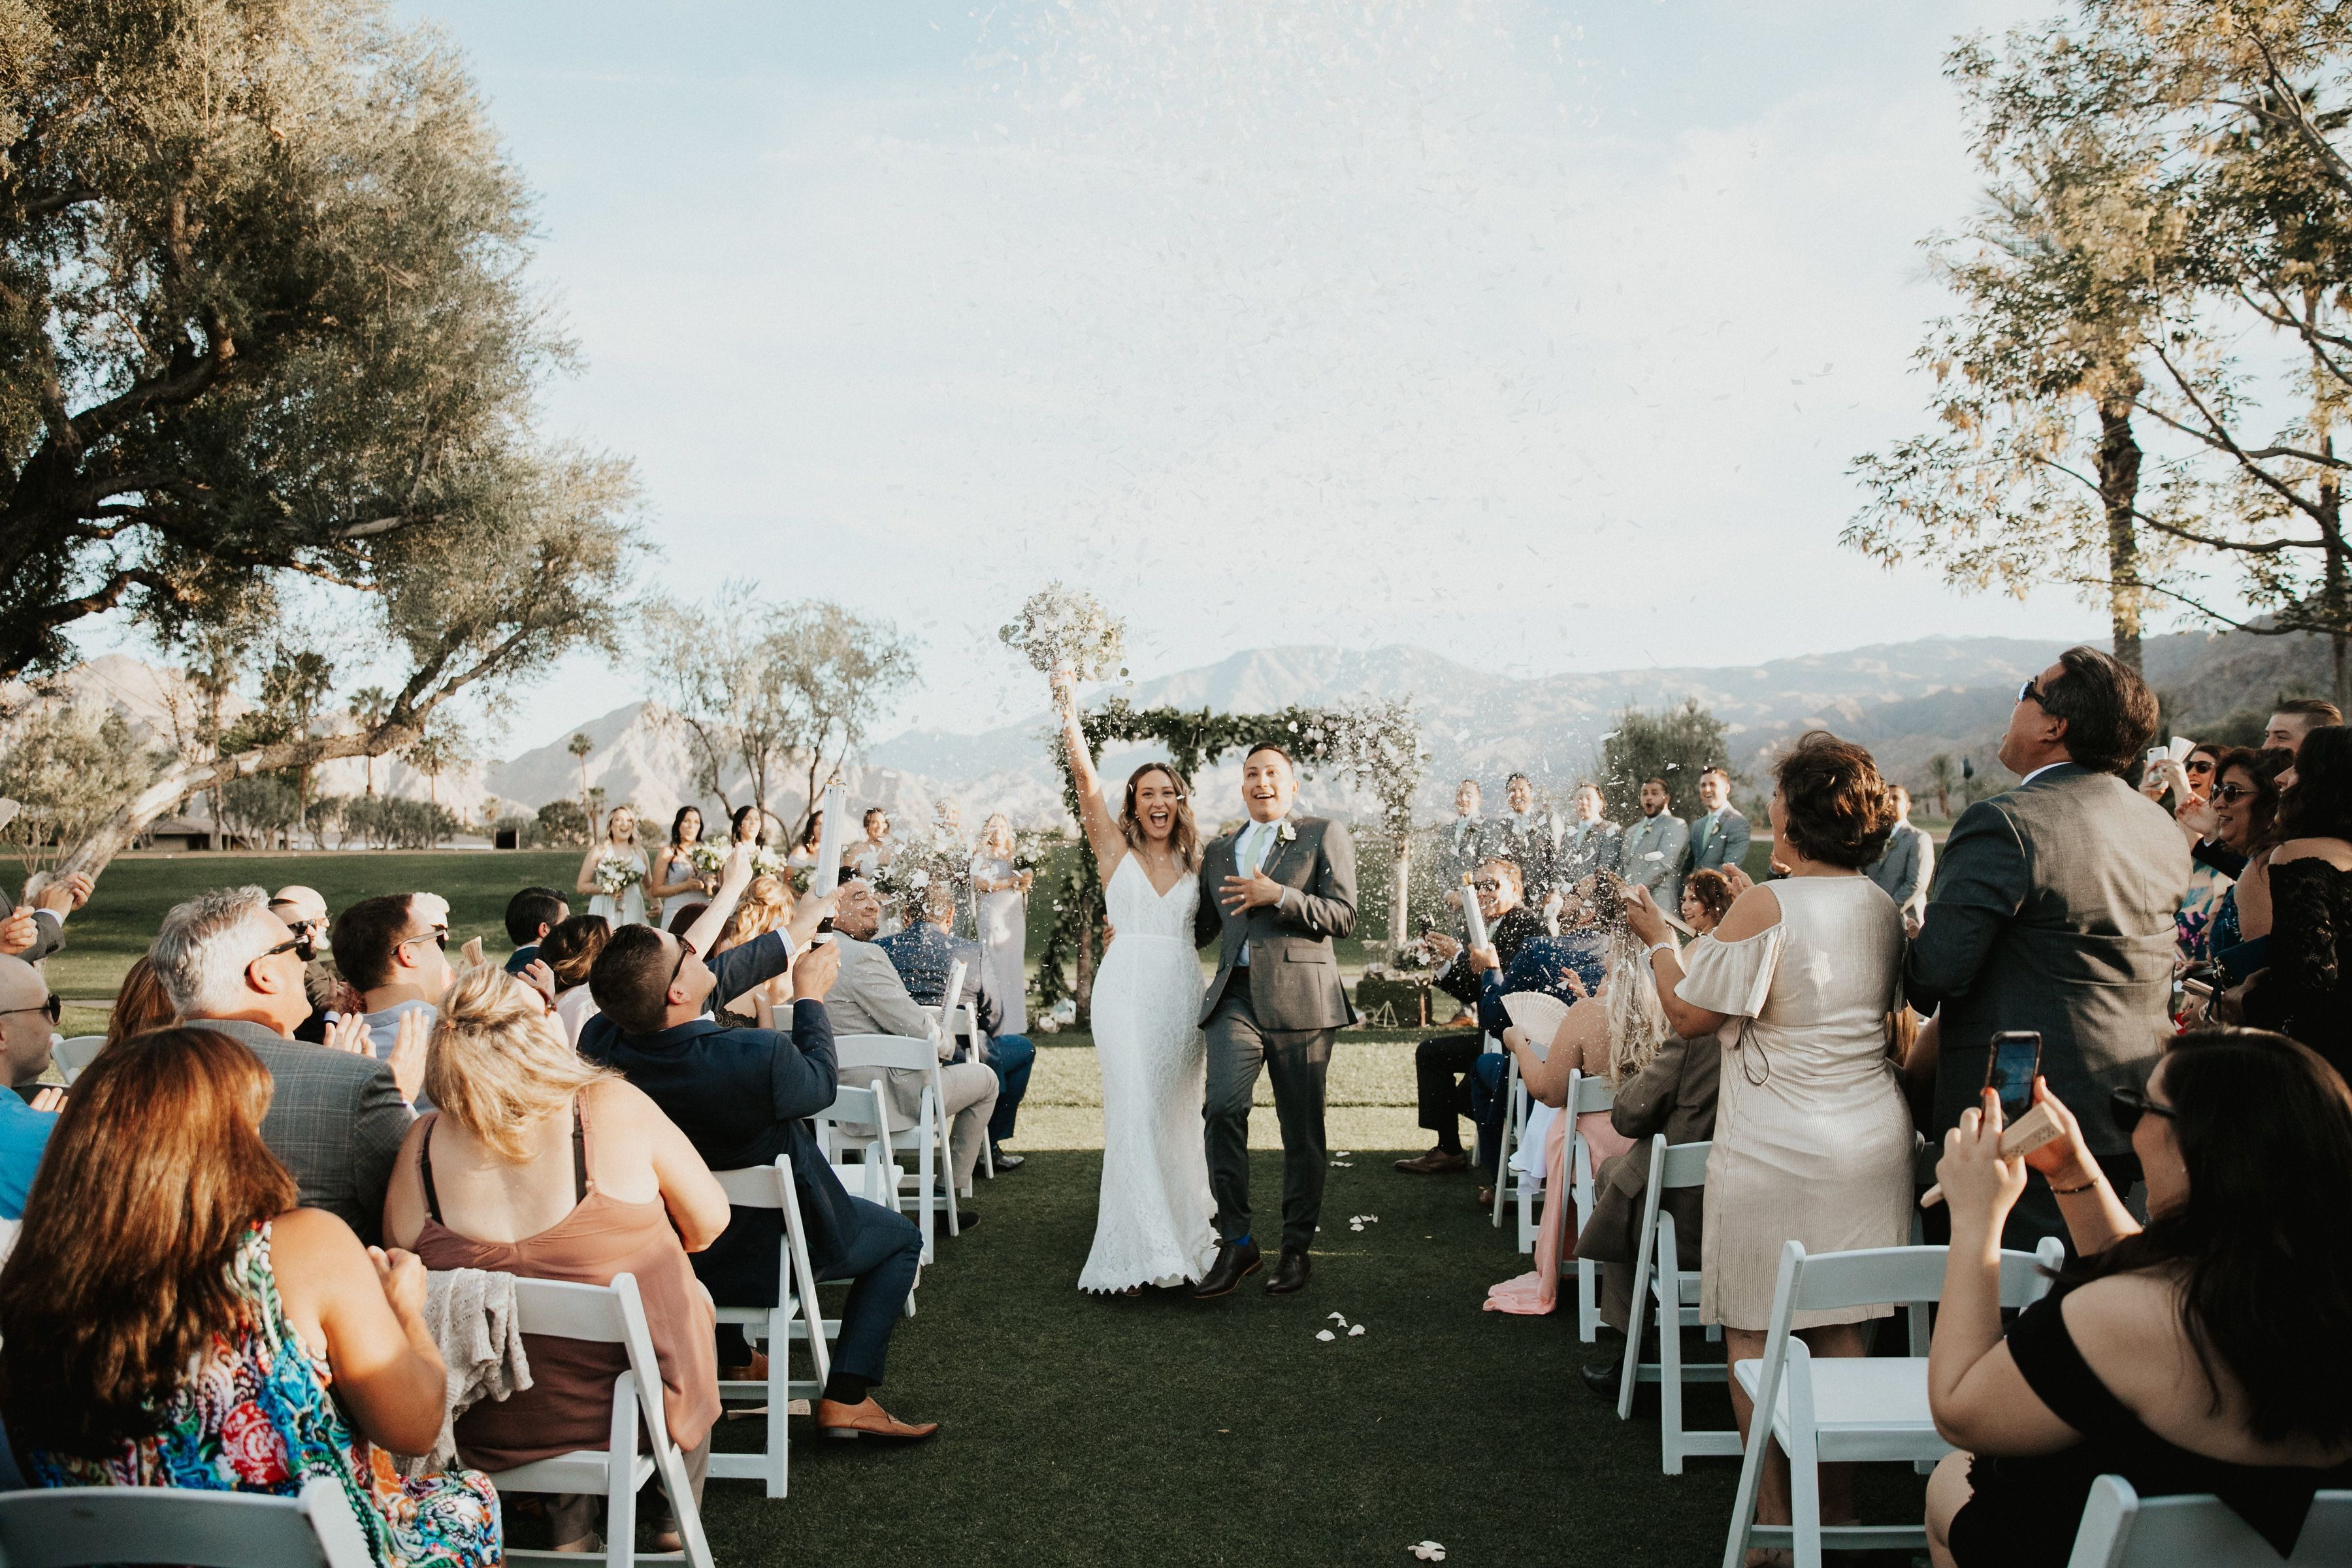 La Quinta Country Club Pure Lavish Events Southern California Wedding Planner Oc Palm Springs Destination